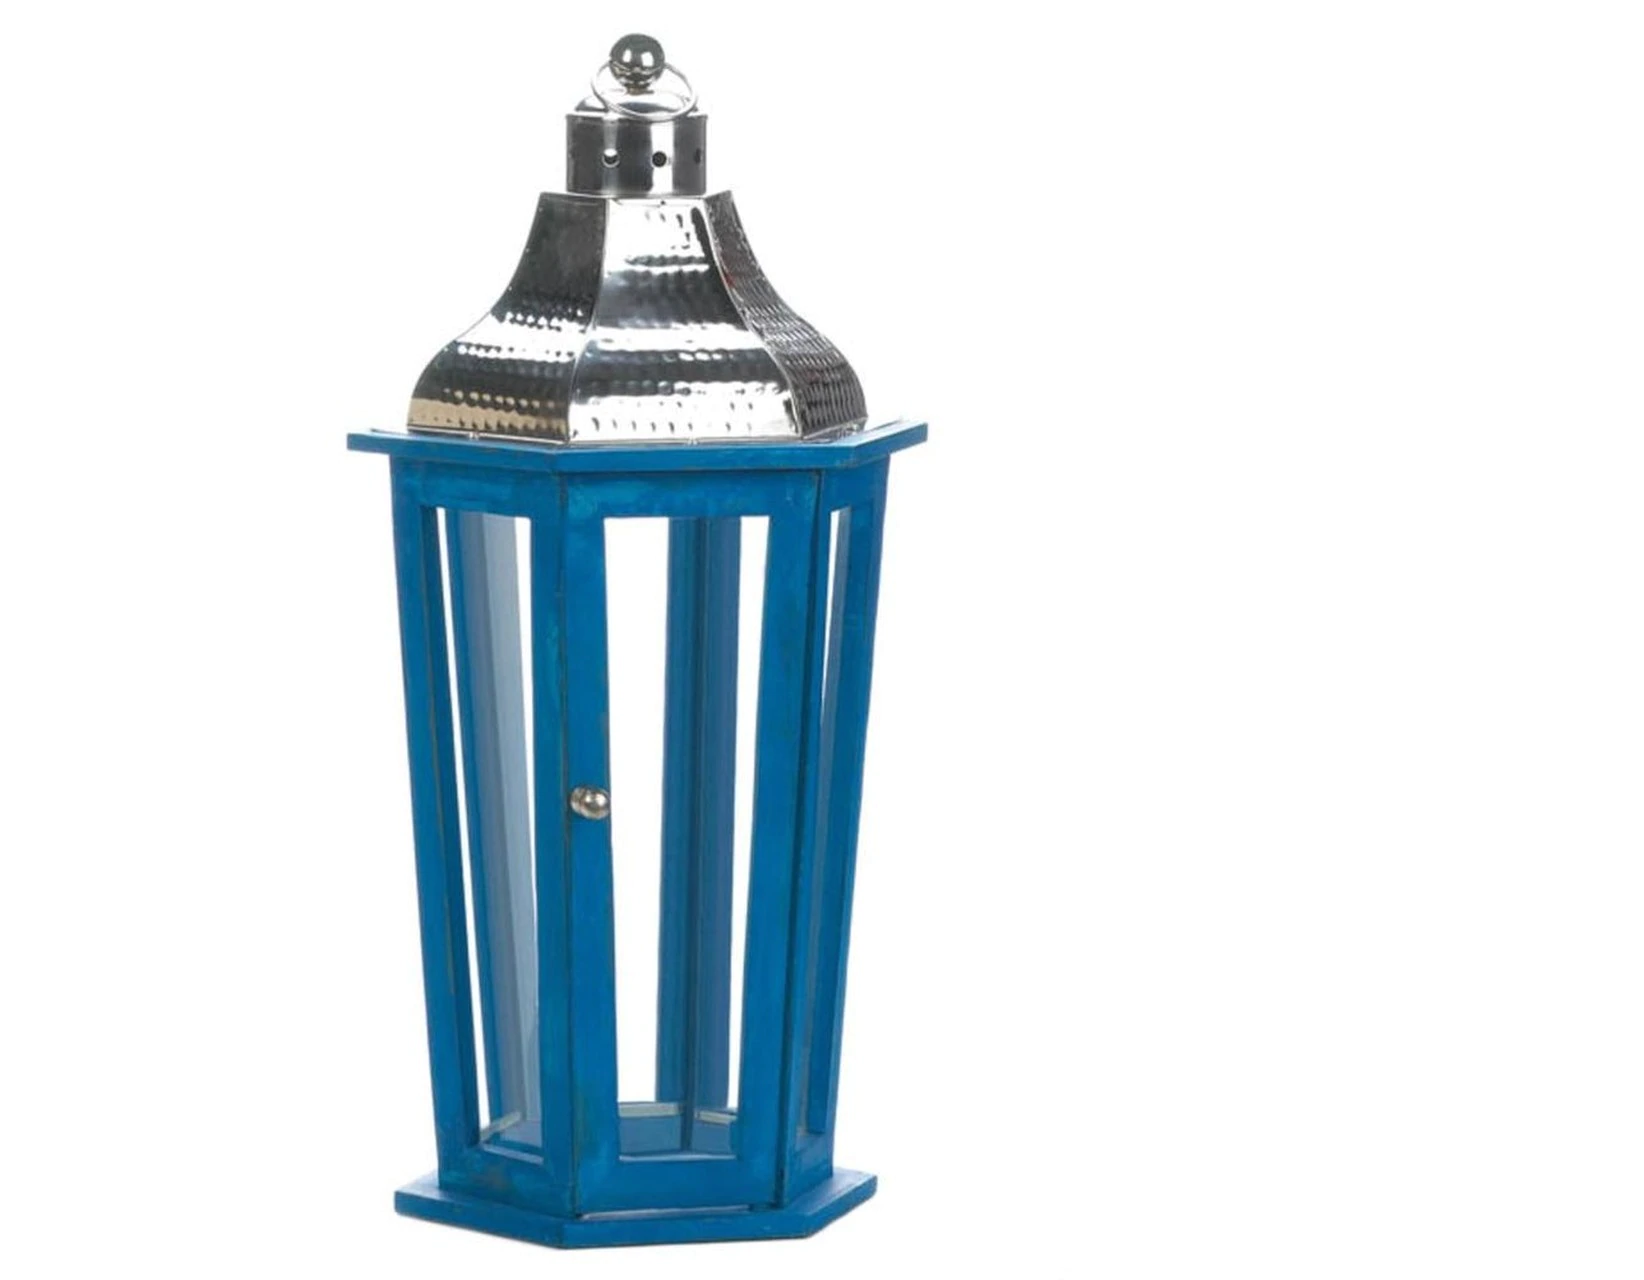 Blue Wood Candle Lantern with Stainless Steel Top - 20 inches